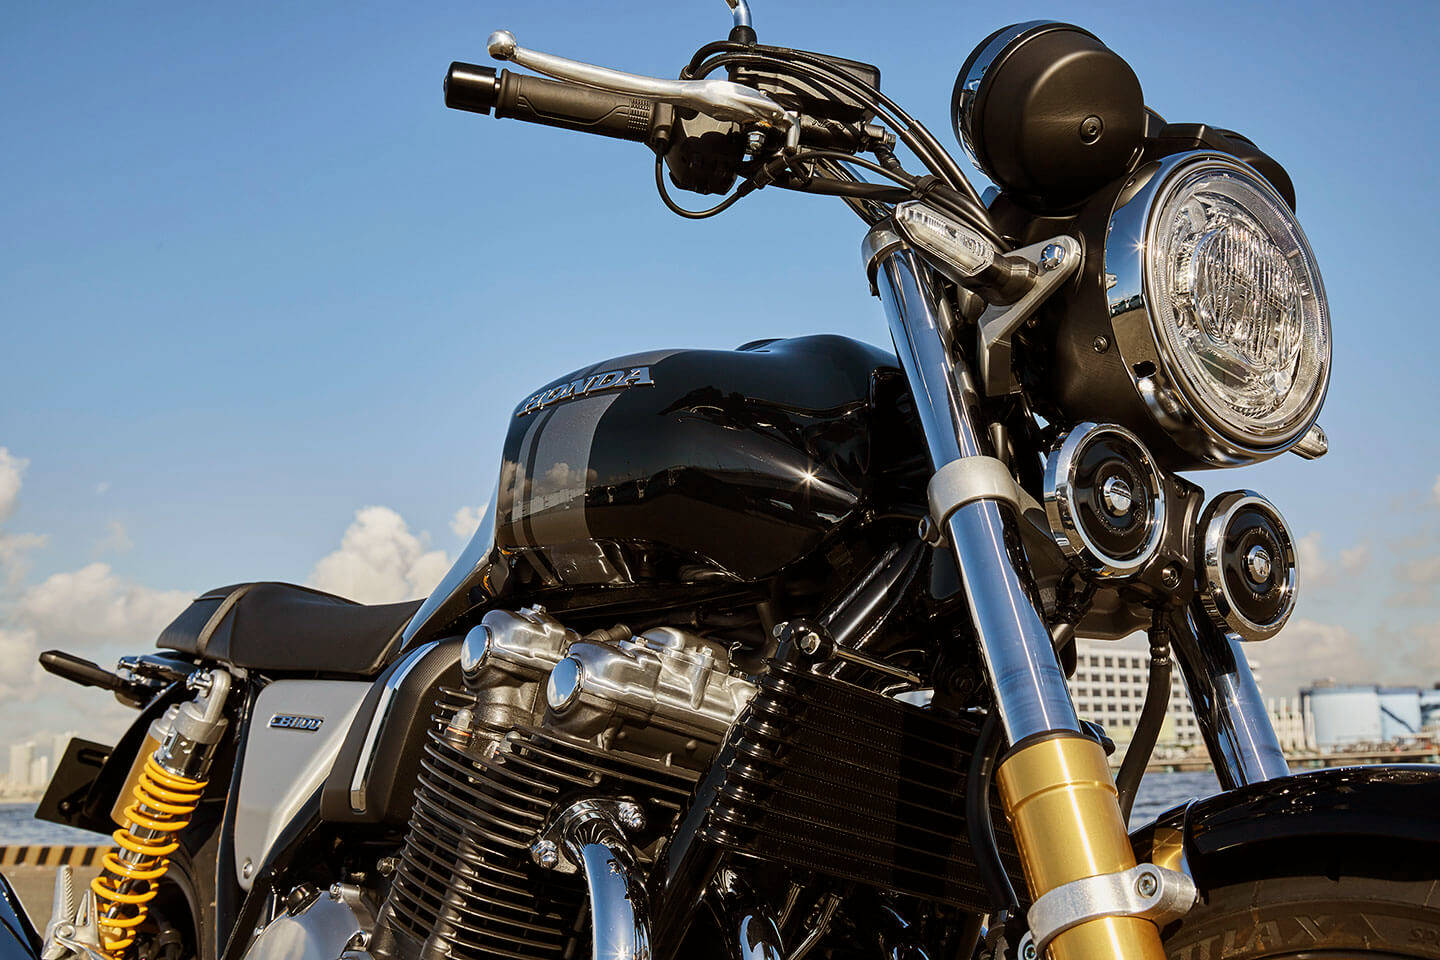 Honda Updates Cb1100 Range Includes Sportier Rs Model Motorcycledaily Com Motorcycle News Editorials Product Reviews And Bike Reviews